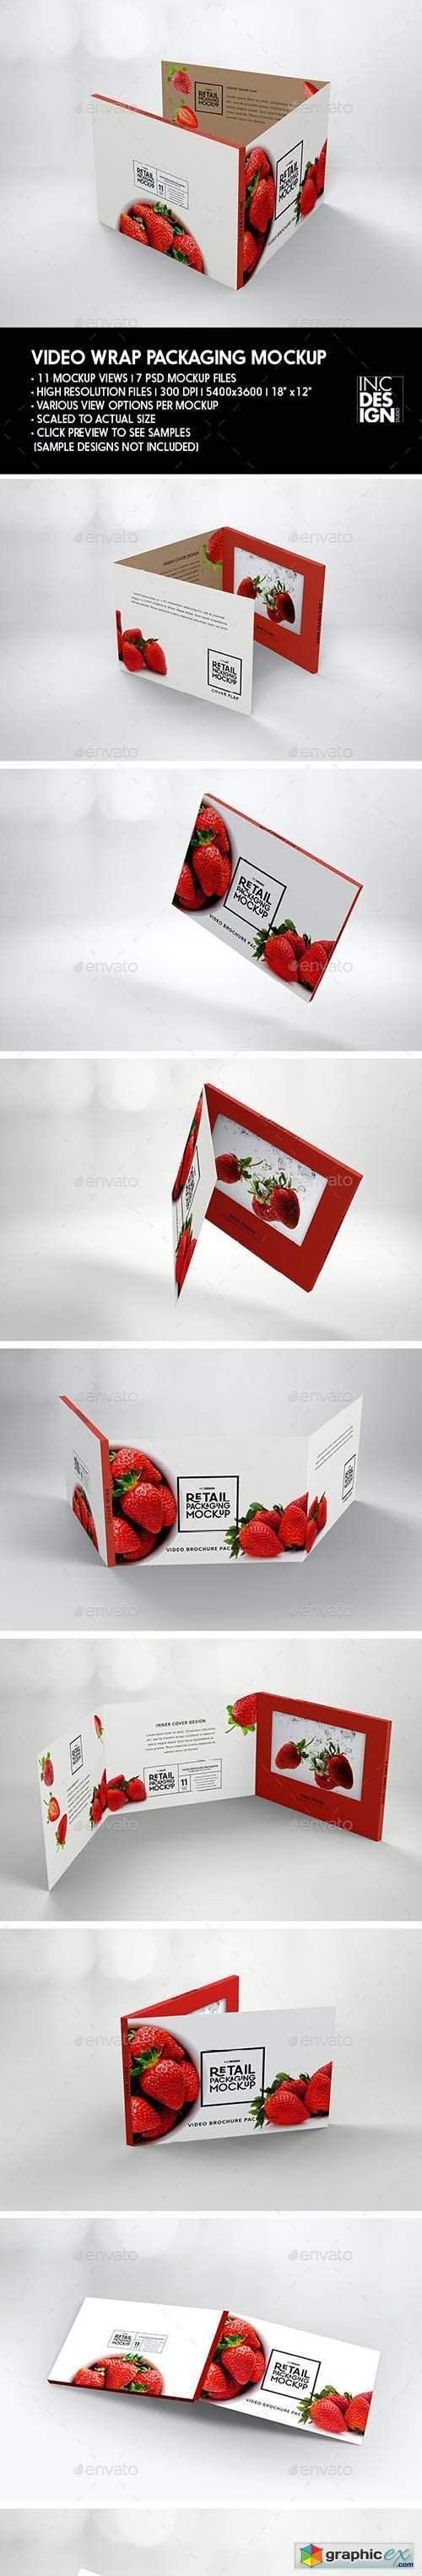 Retail Video Wrap Brochure Packaging Mockup